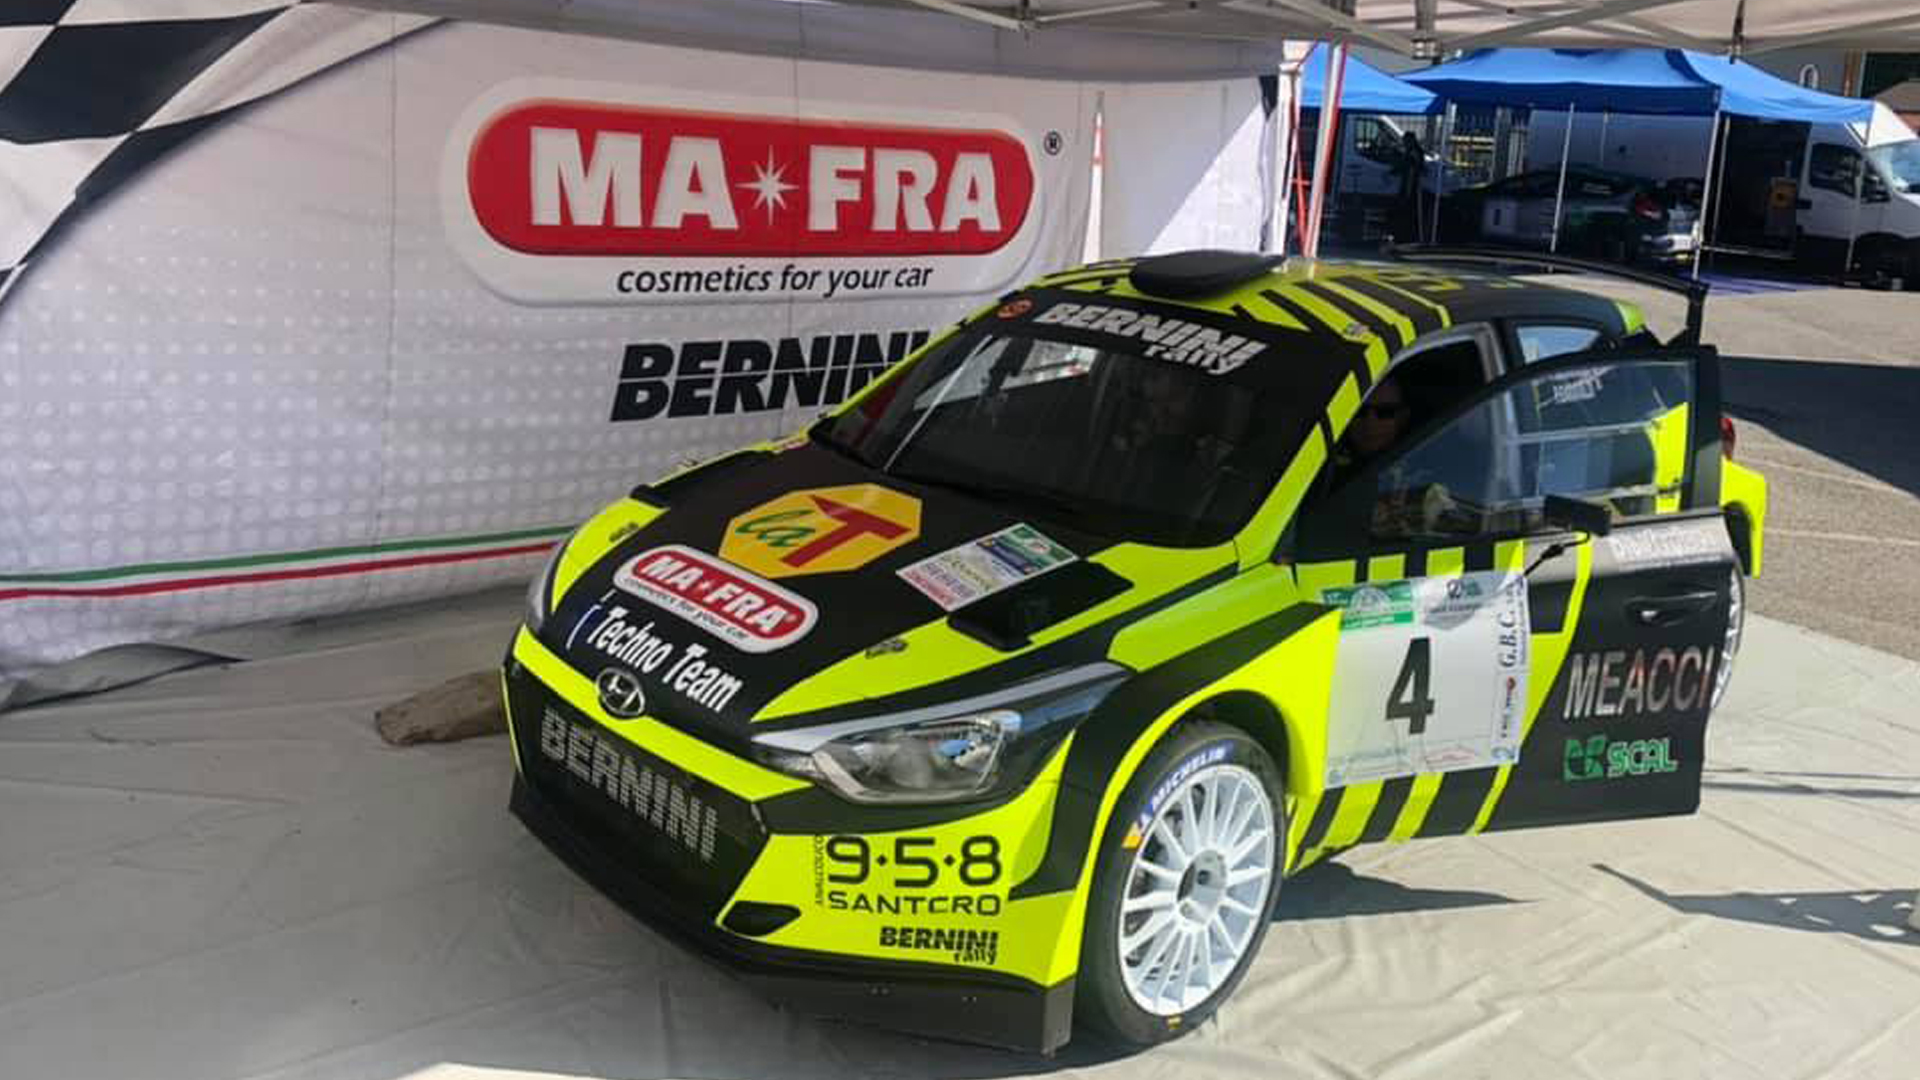 Mafra Sponsor Team Bernini Rally